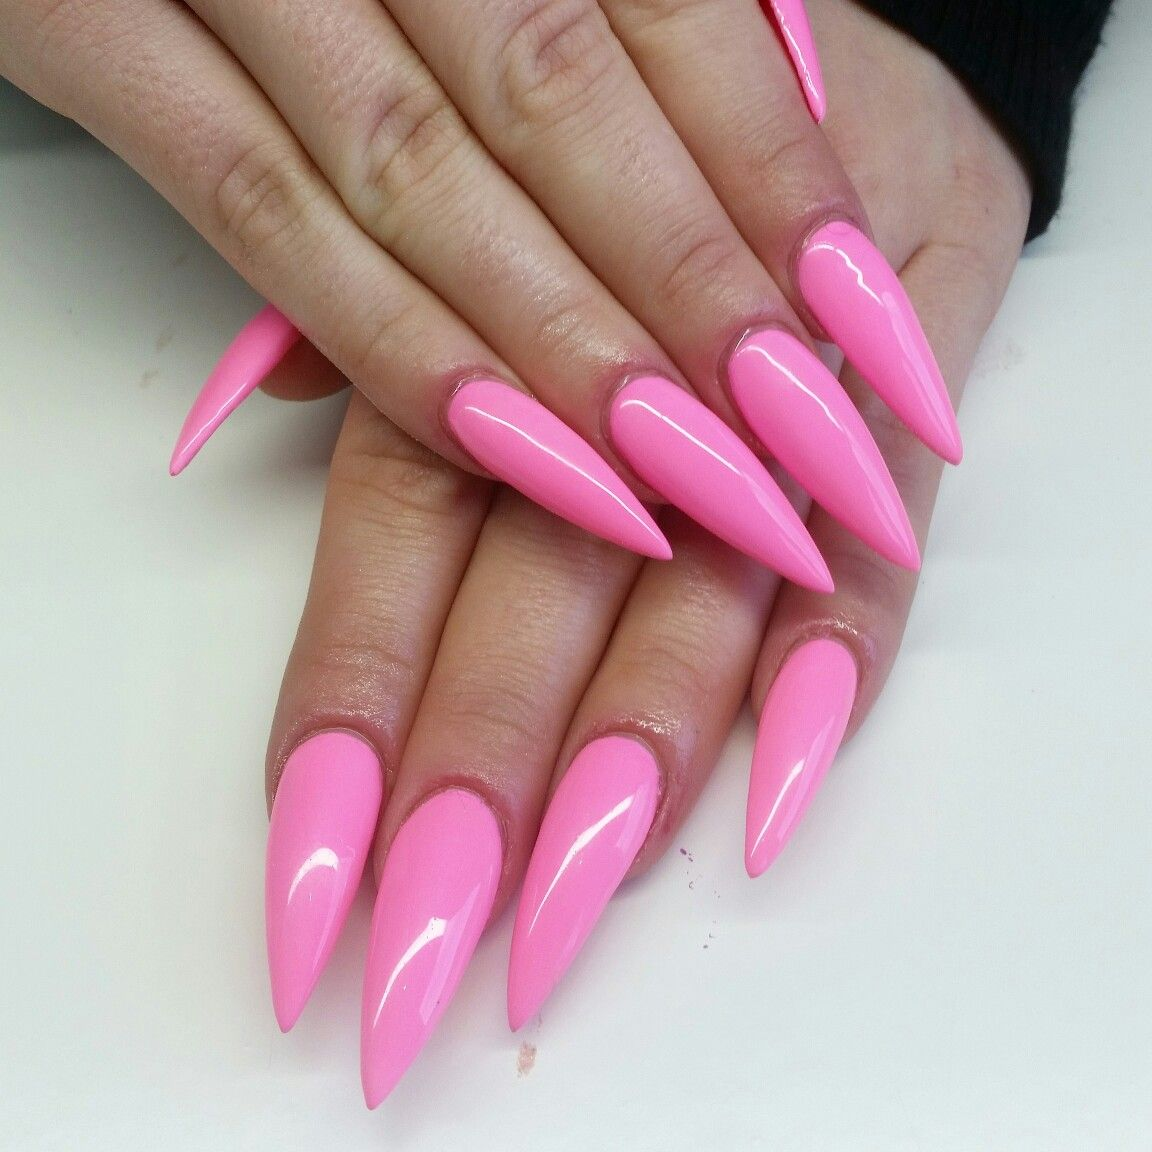 Barbie Pink Stiletto Nails Luxx Beautique Pink Stiletto Nails Pink Nails Stiletto Nails